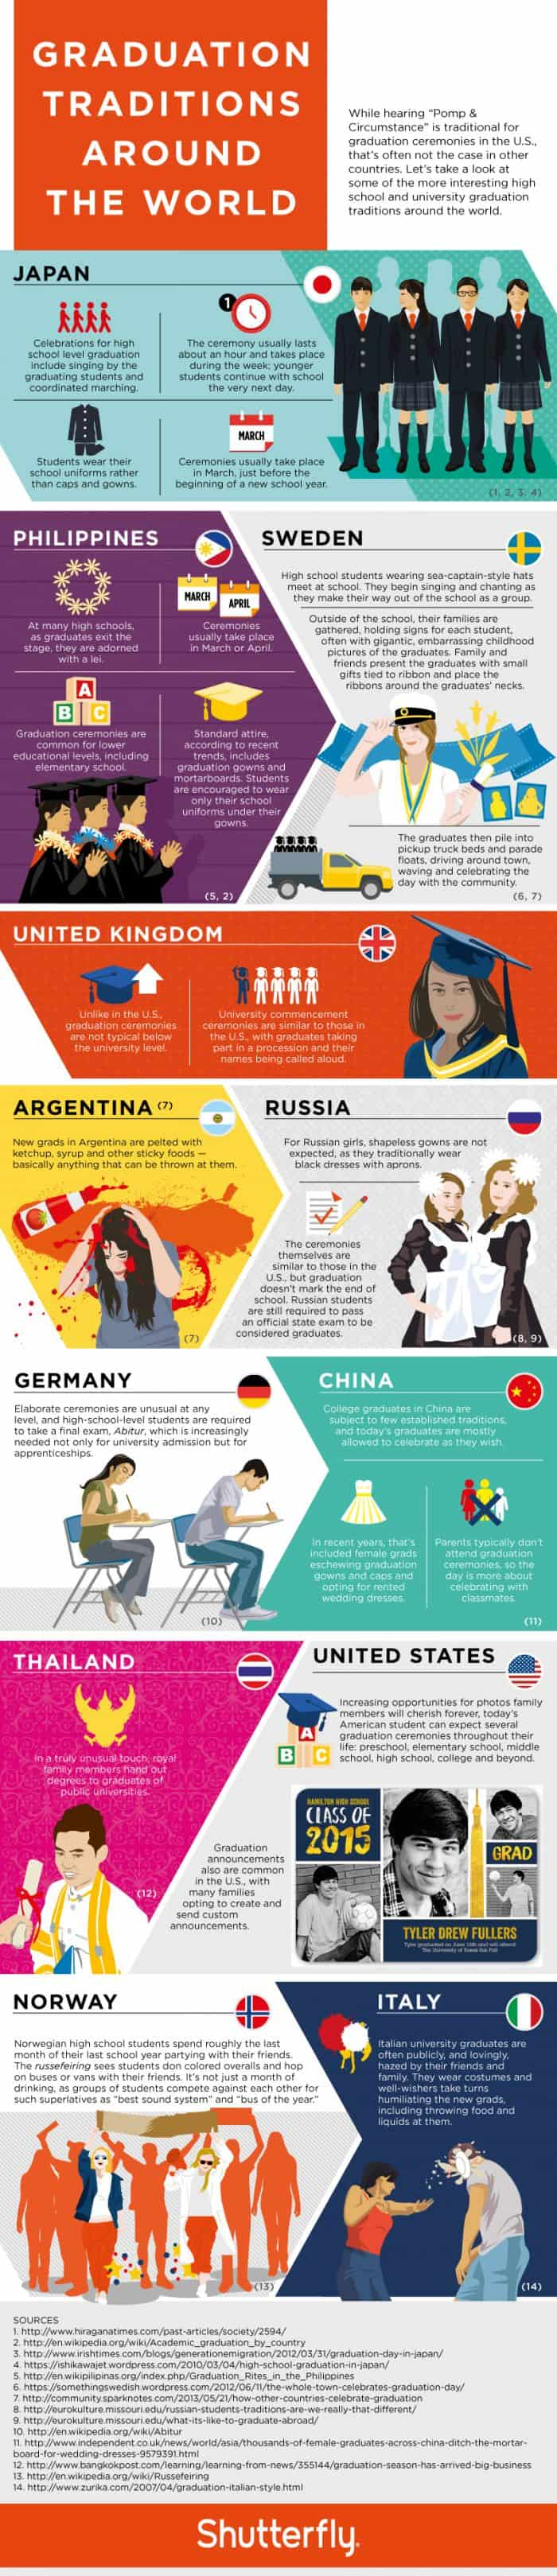 Graduation Traditions Around The World Infographic